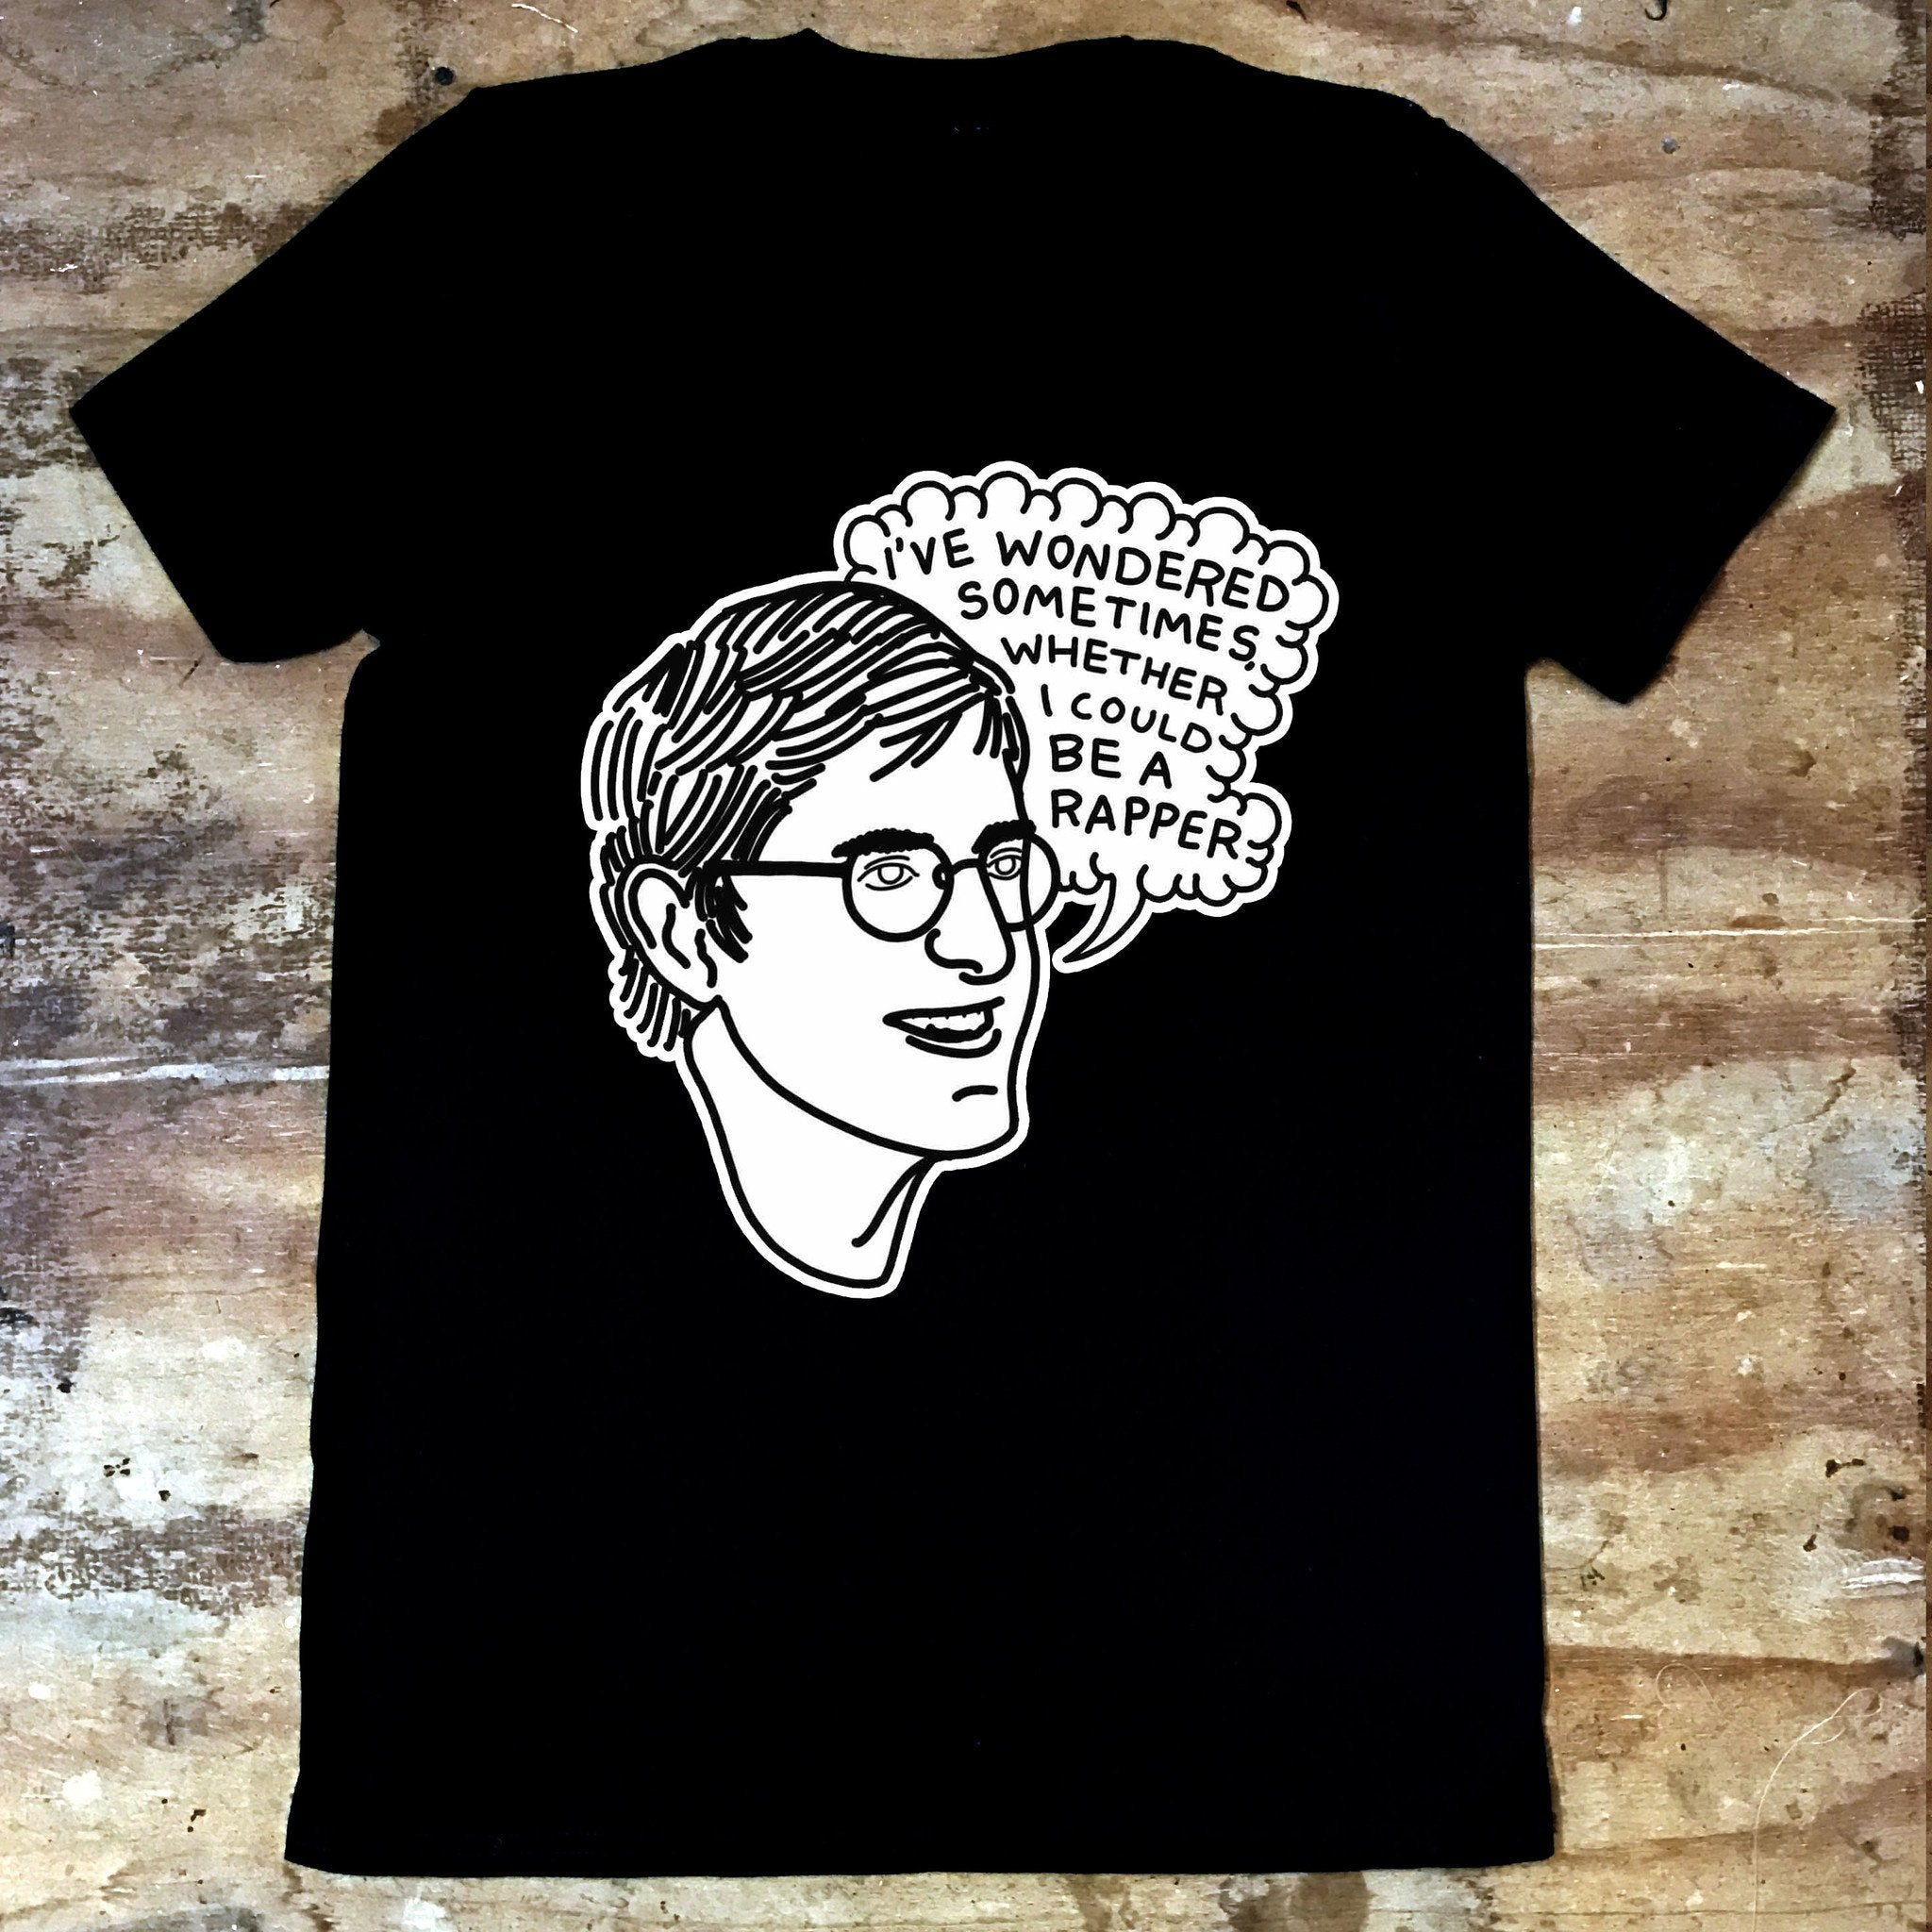 Louis Theroux - I Wonder Sometimes Wether I Could Be a Rapper - Jiggle Apparel